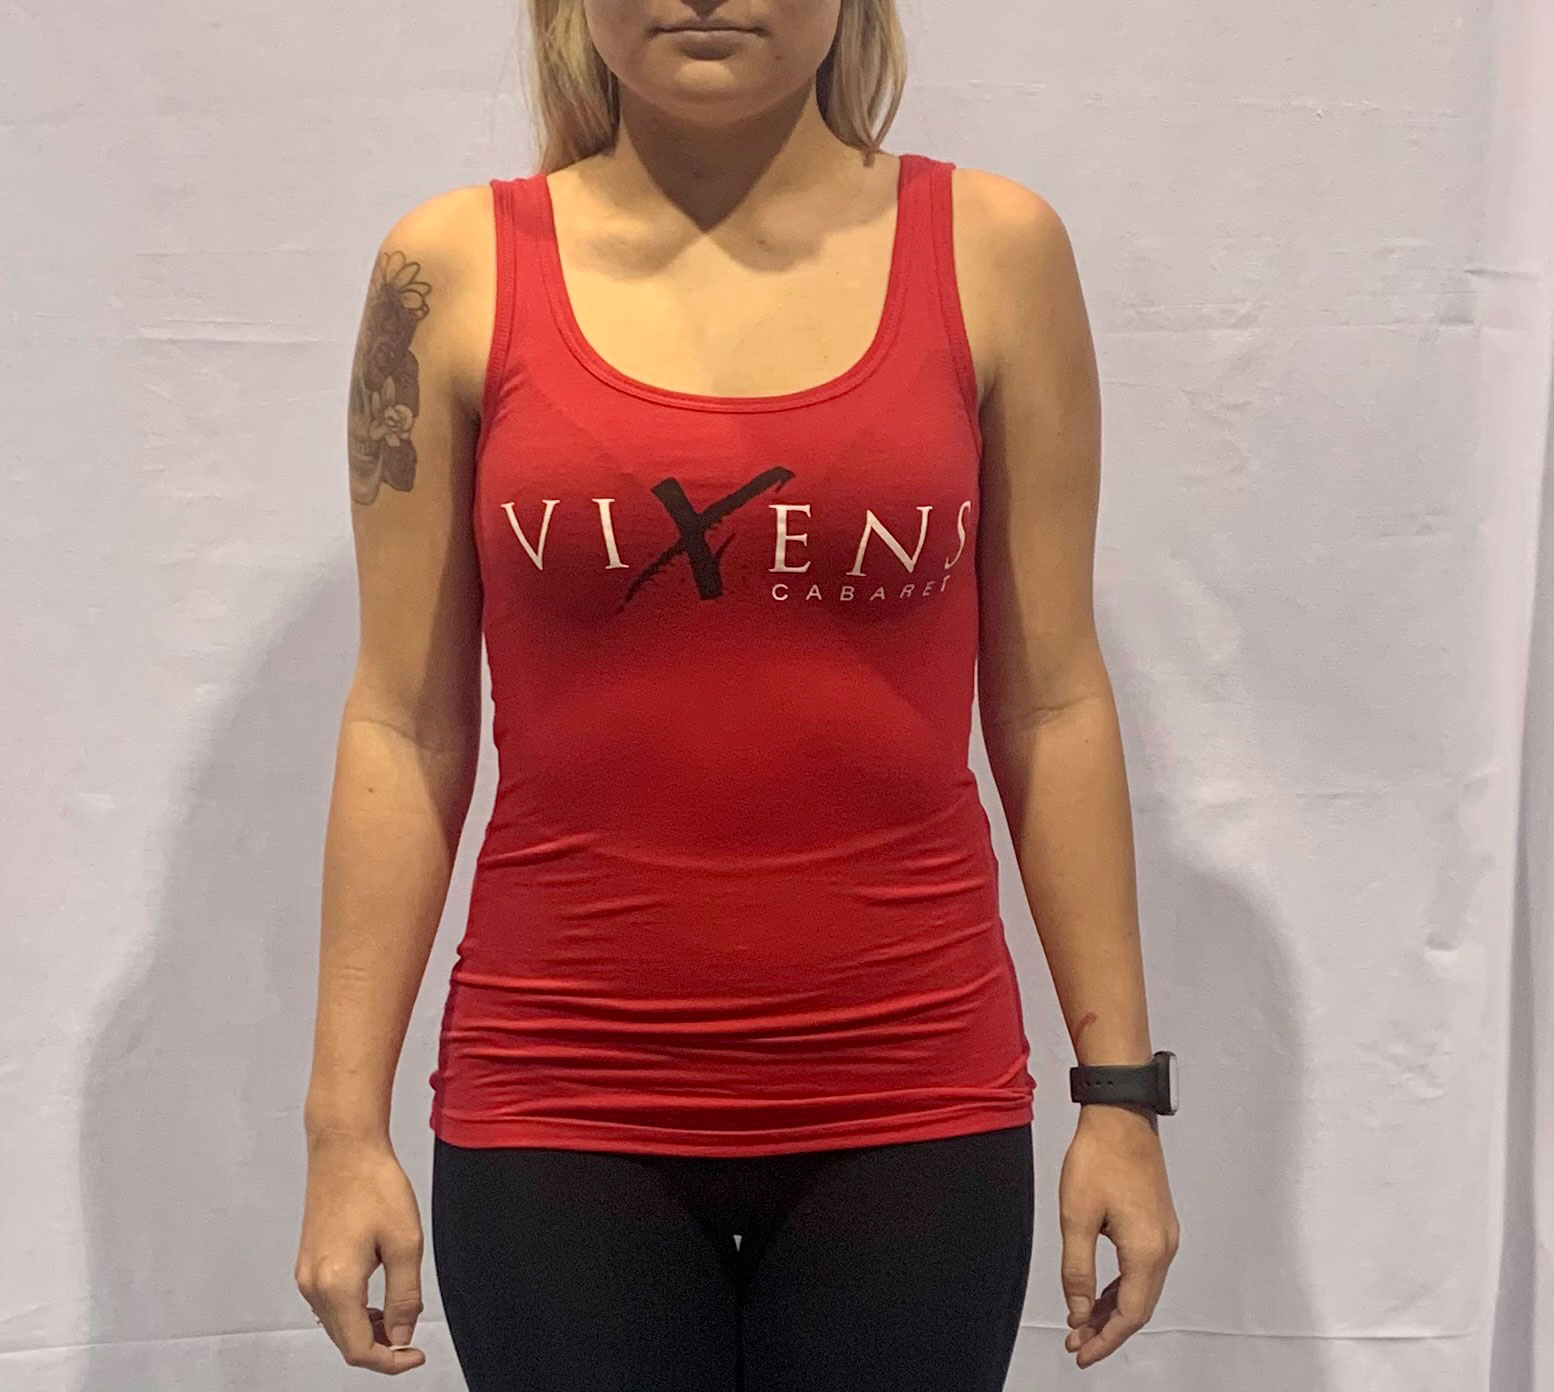 Women Tank Top (Red)